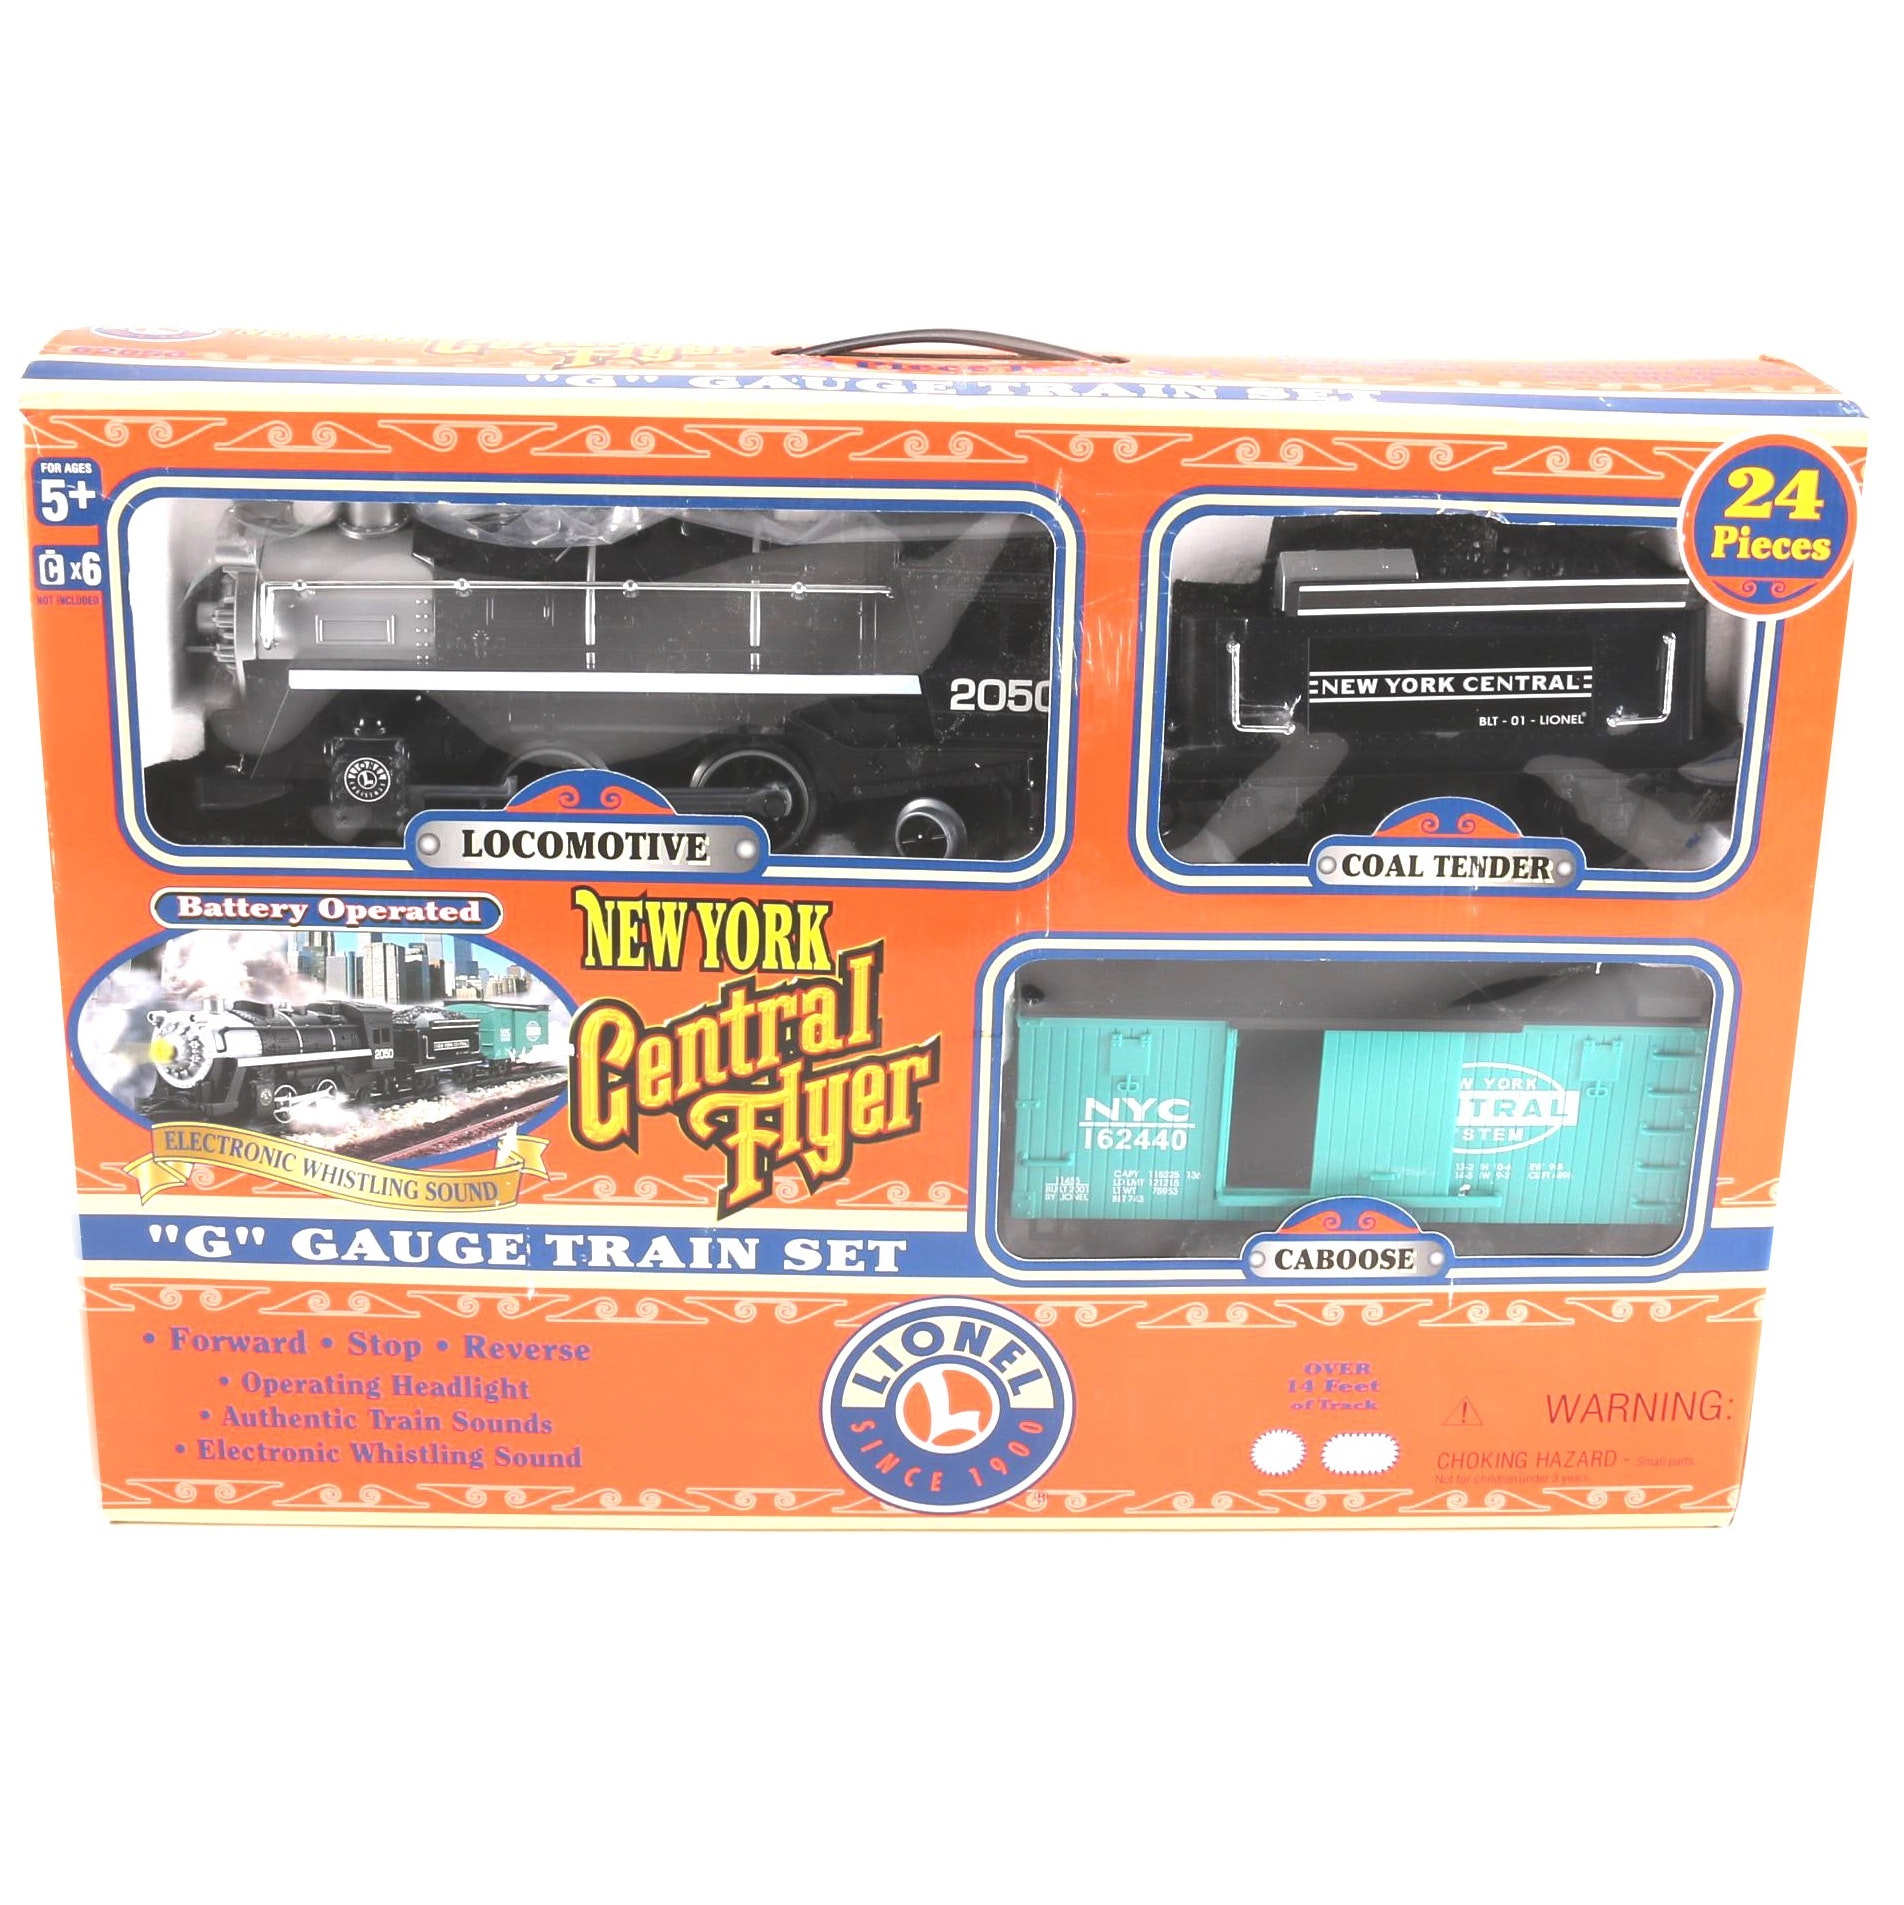 Lionel New York Central Flyer Train Set